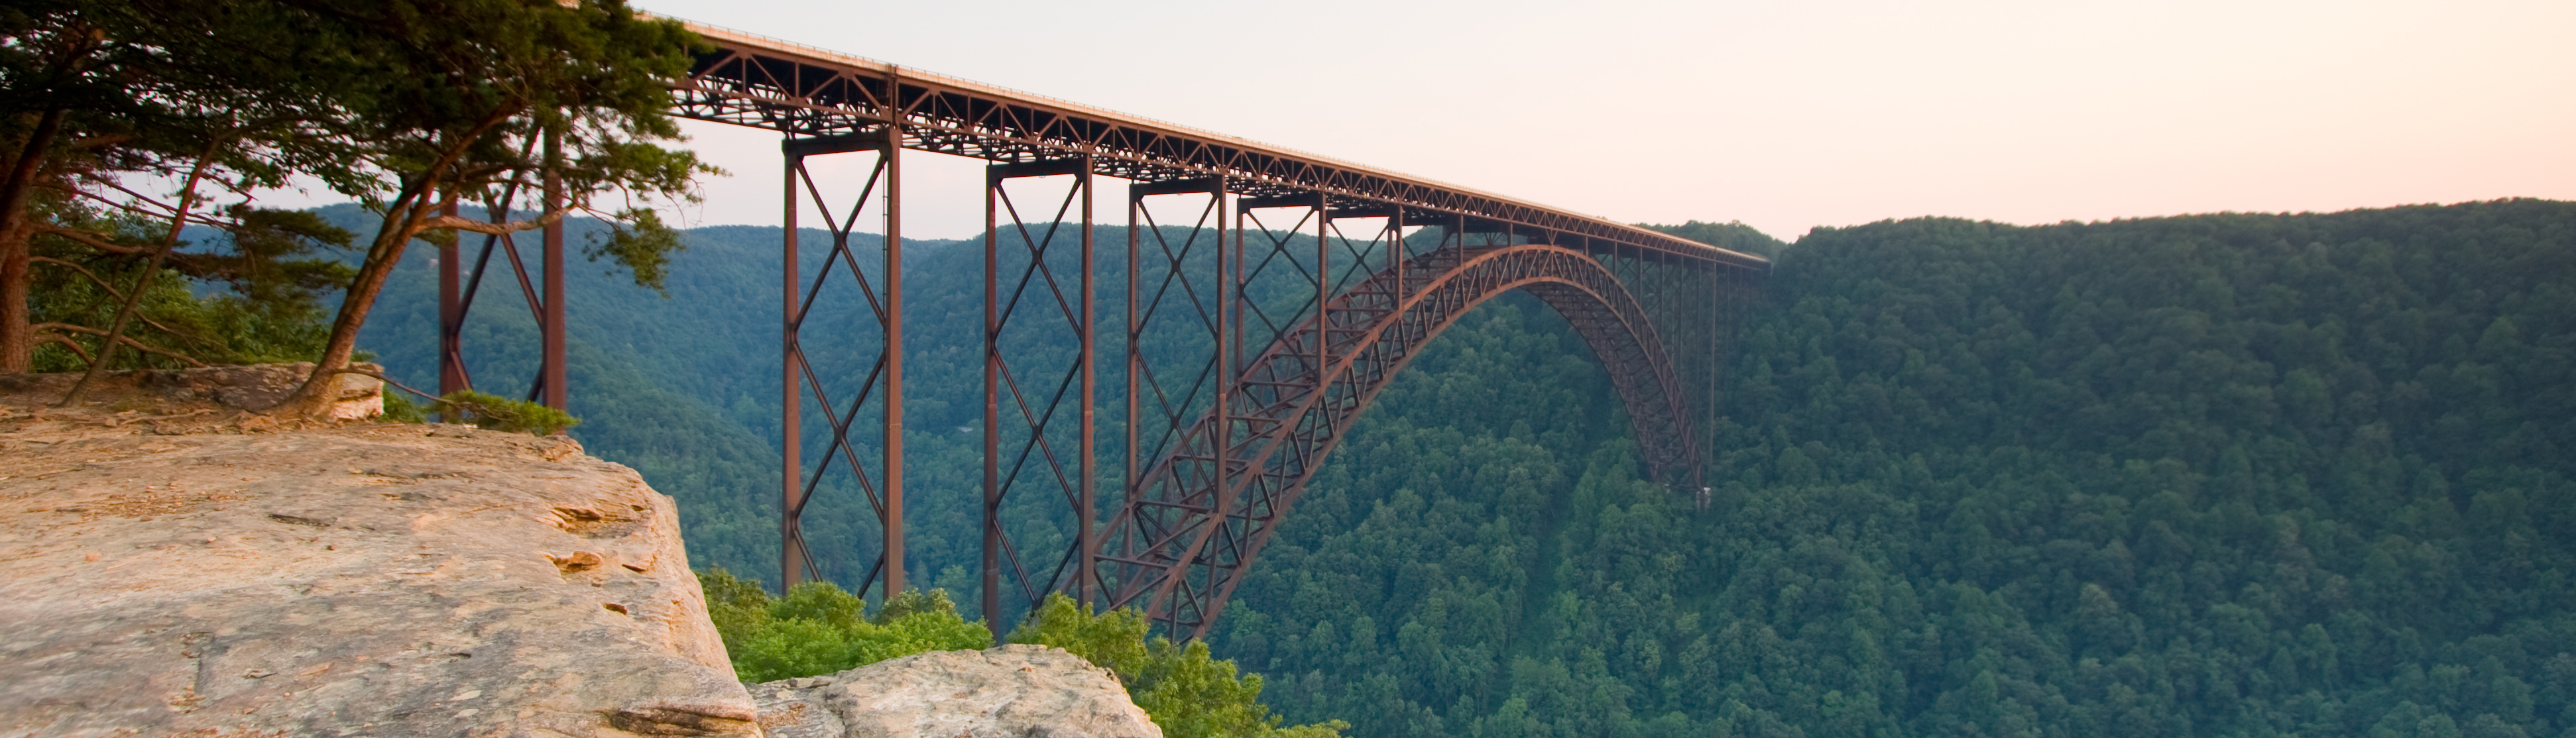 New River Gorge Cabins Bridge